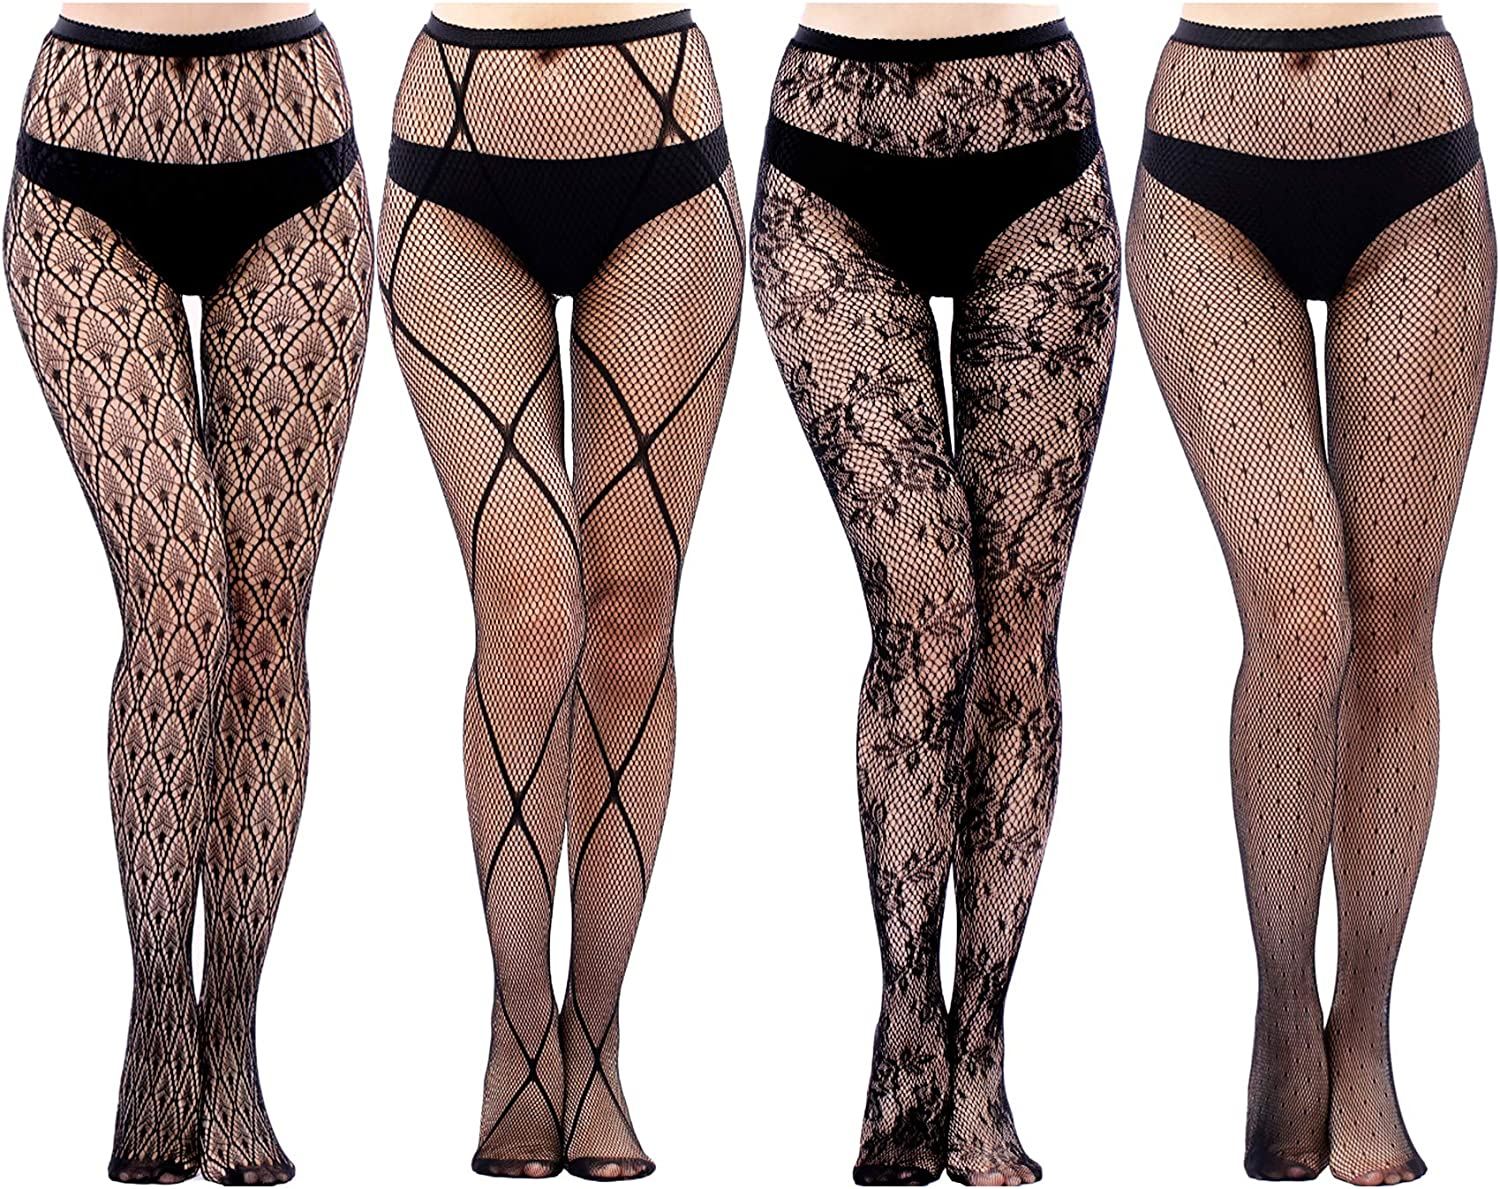 4/5 Pairs Womens Fishnet Stockings Thigh High Fishnet Tights Suspender Pantyhose for Women